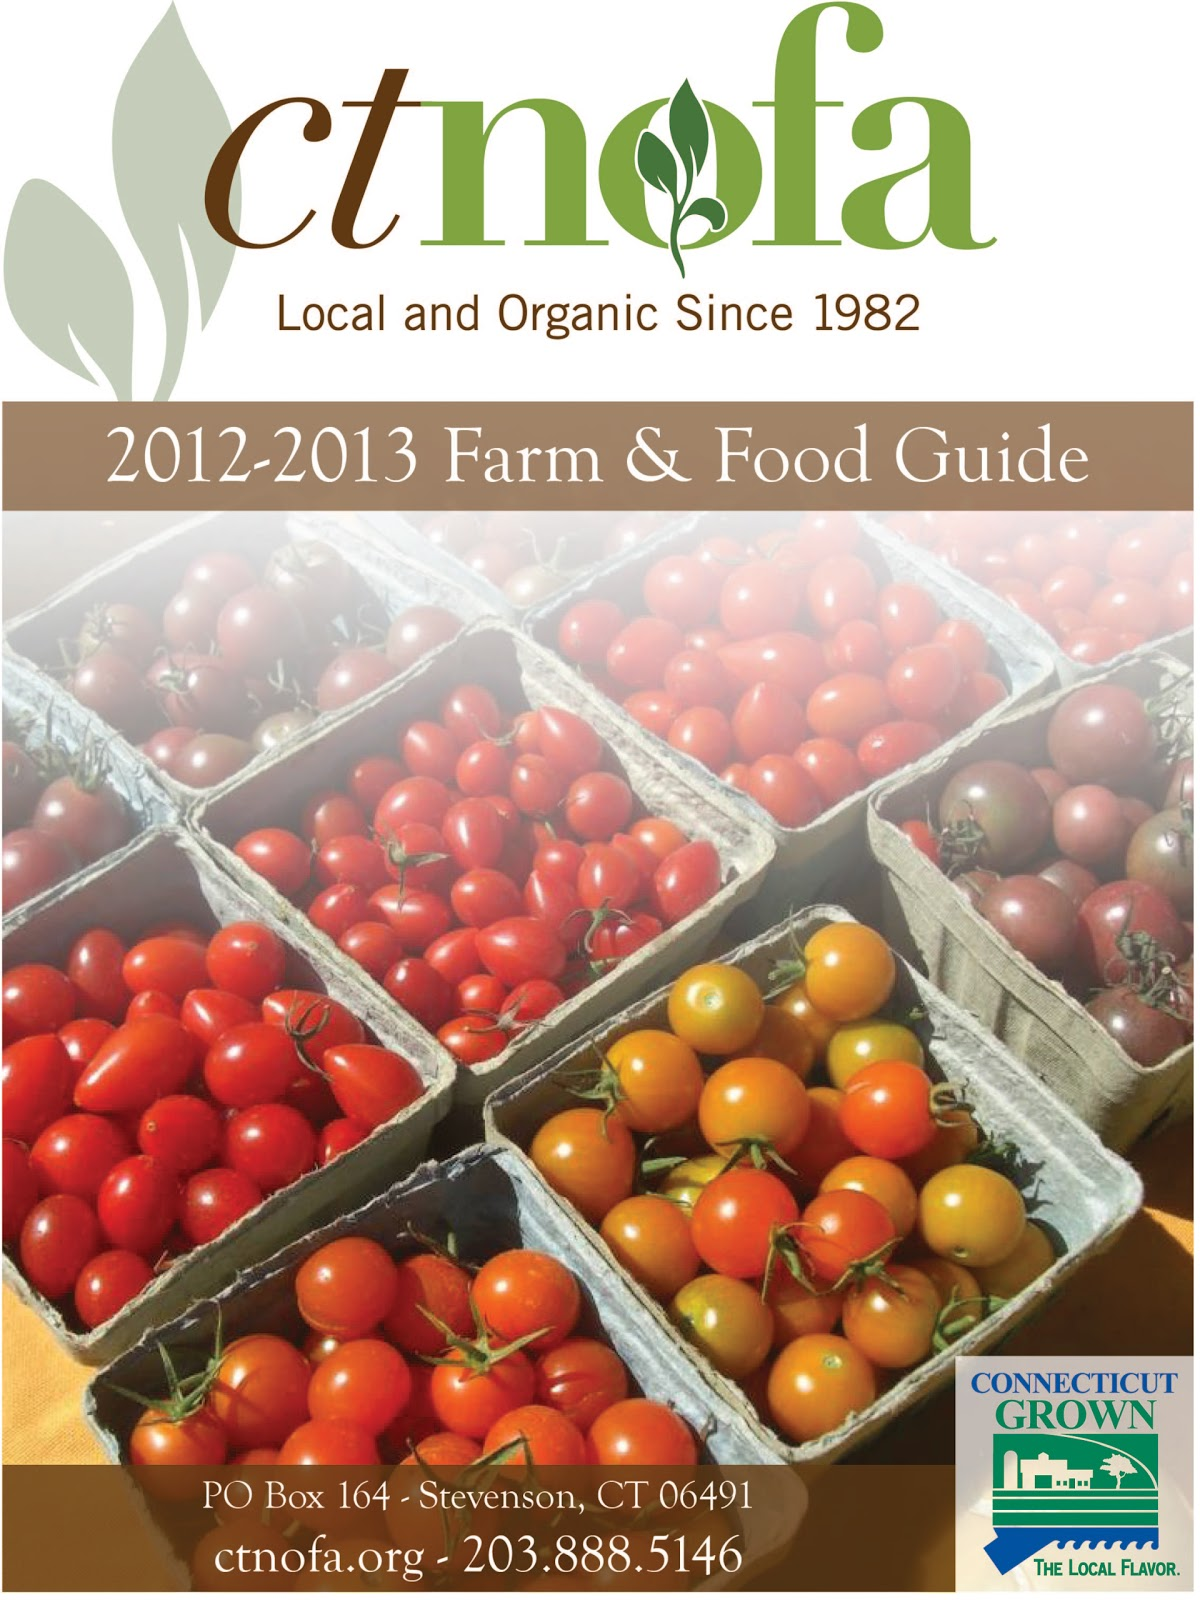 2012 CT NOFA Farm and Food Guide